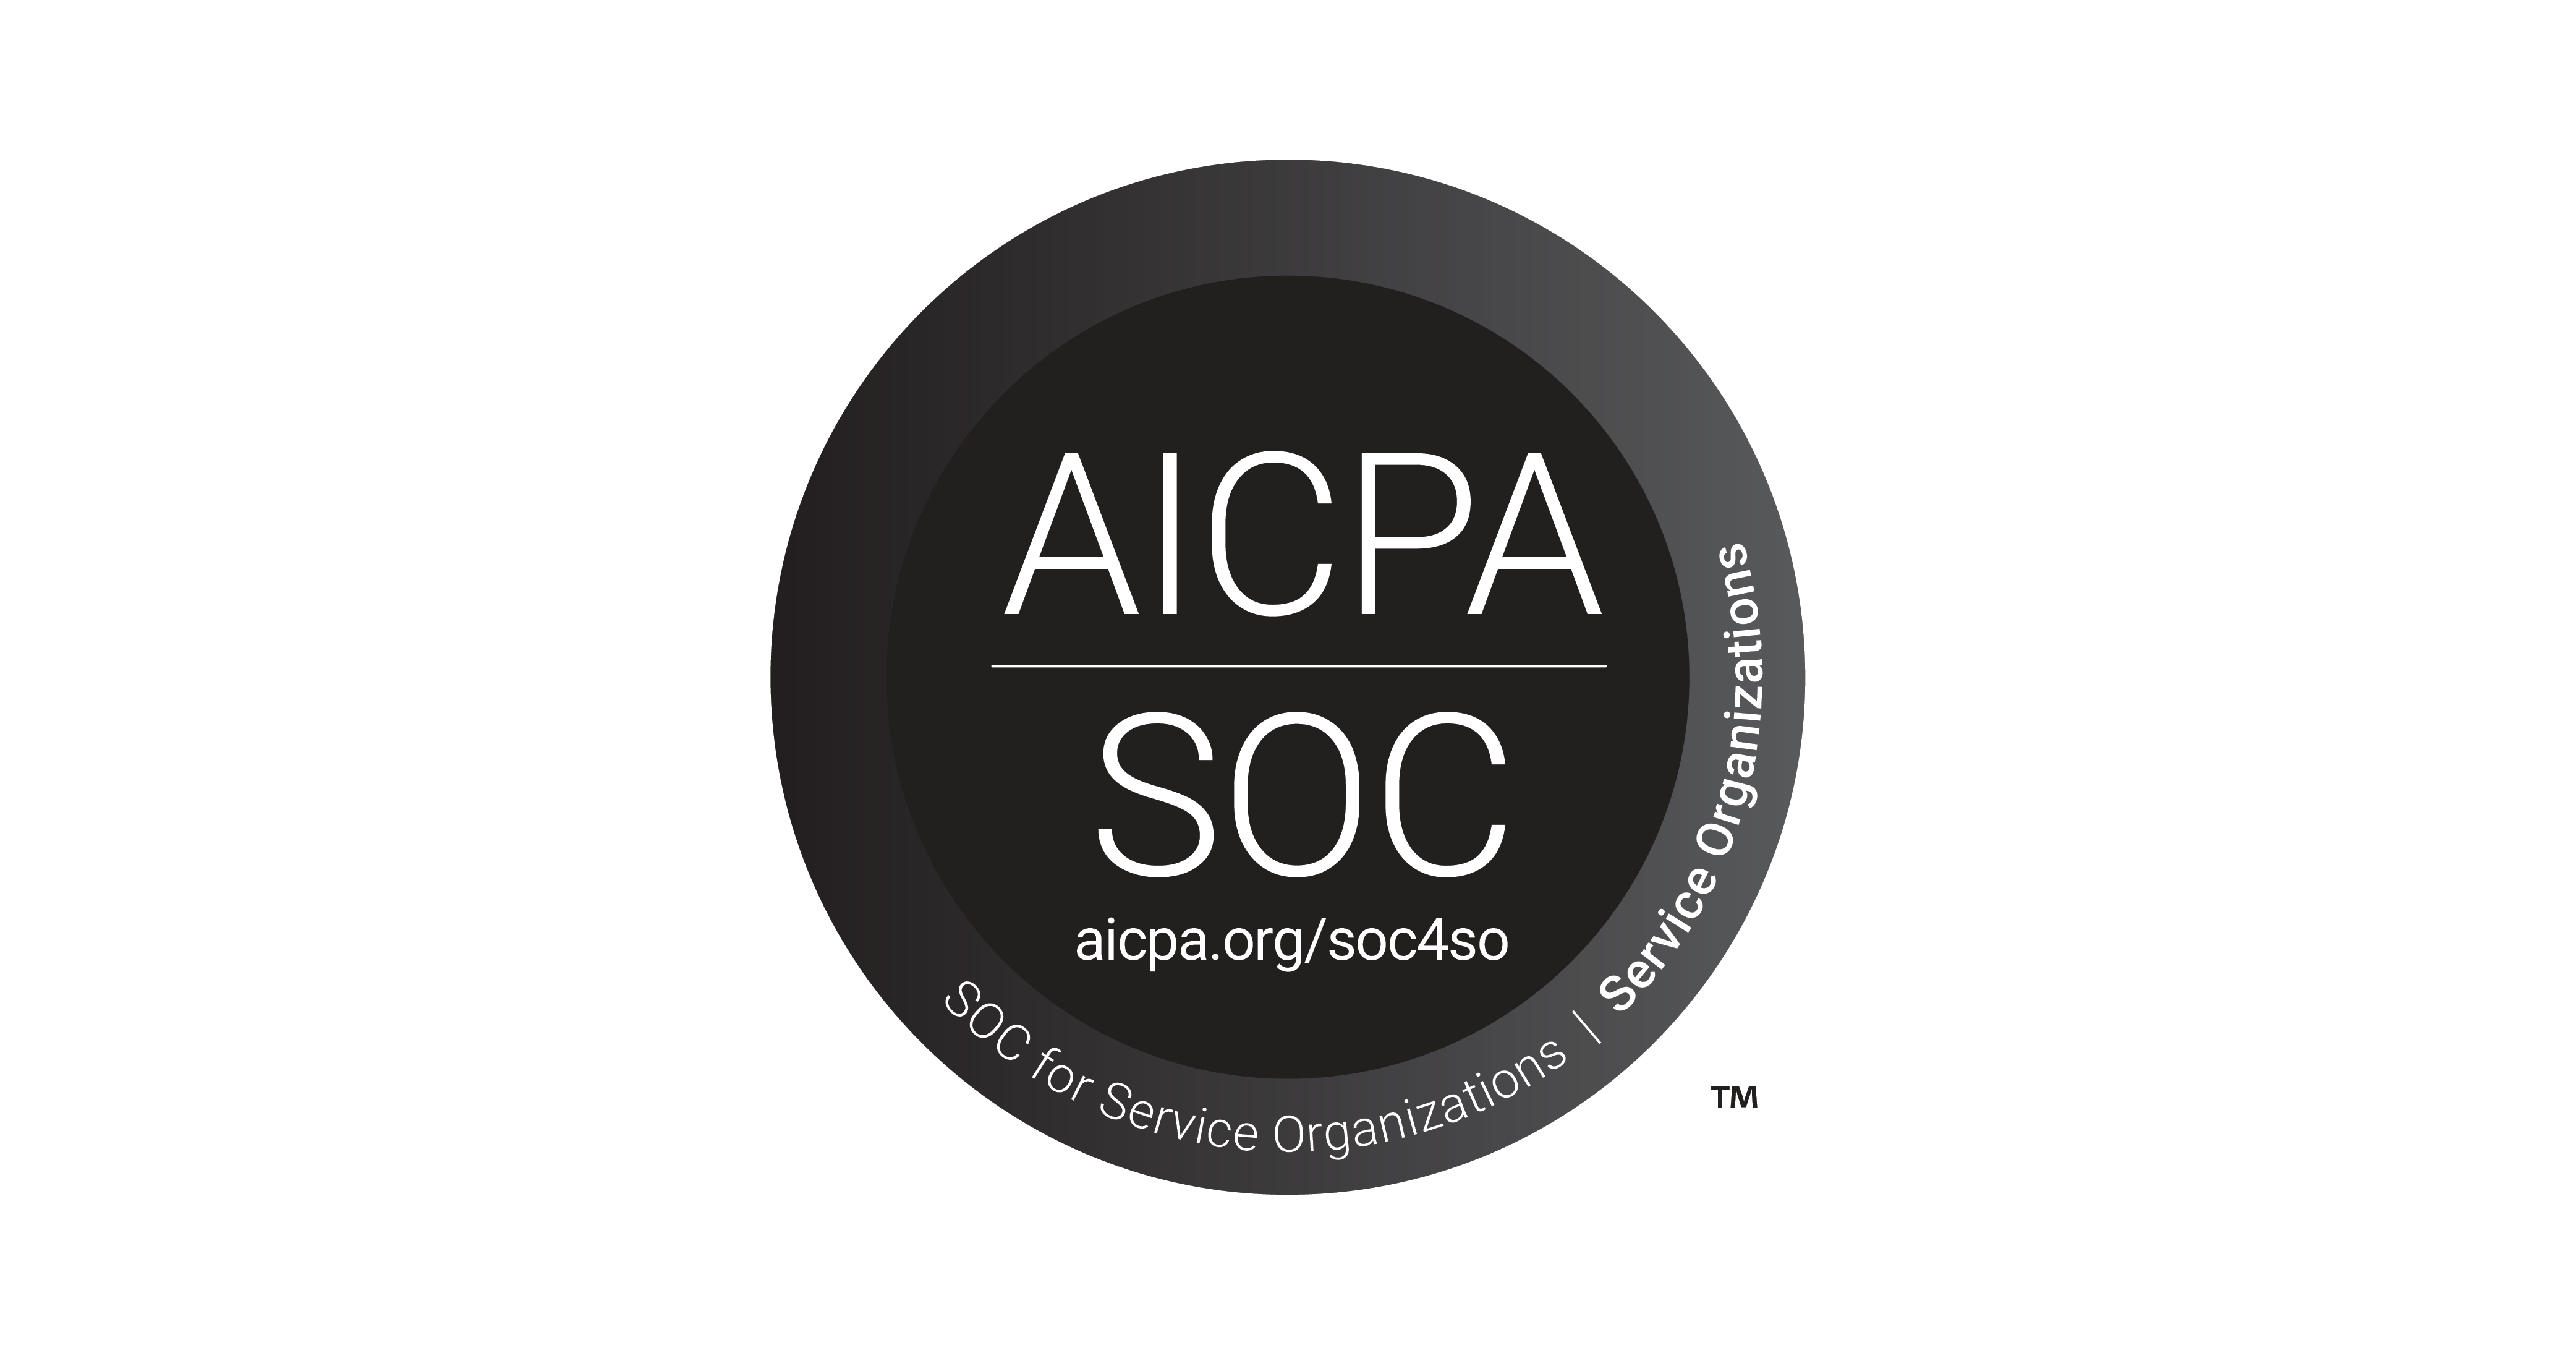 Image of black and white badge for AICPA SOC 2 security certification.